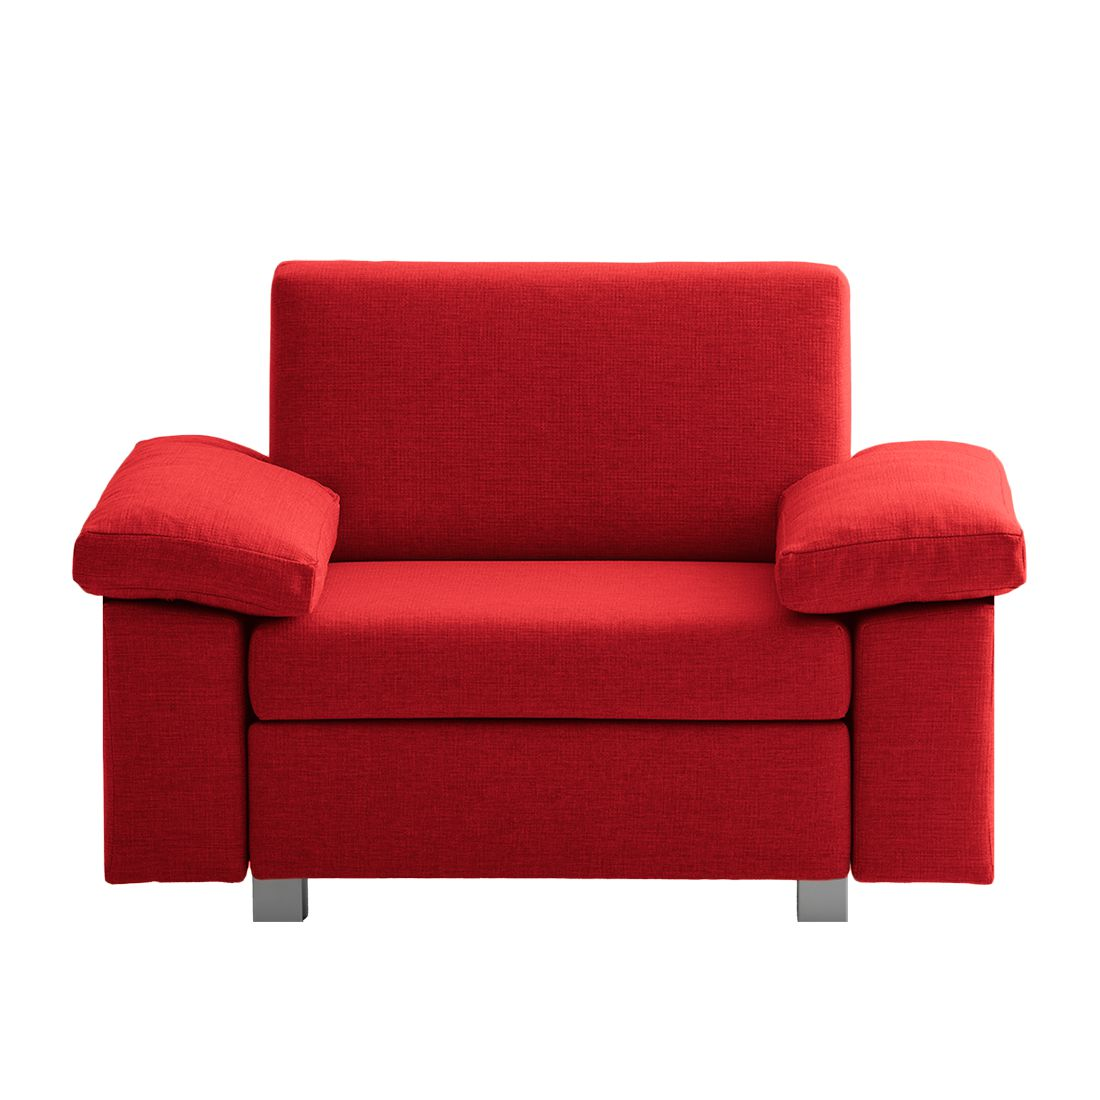 Fauteuil convertible Plaza - Tissu - Rouge - Types d'accoudoir rabattable, chillout by Franz Fertig